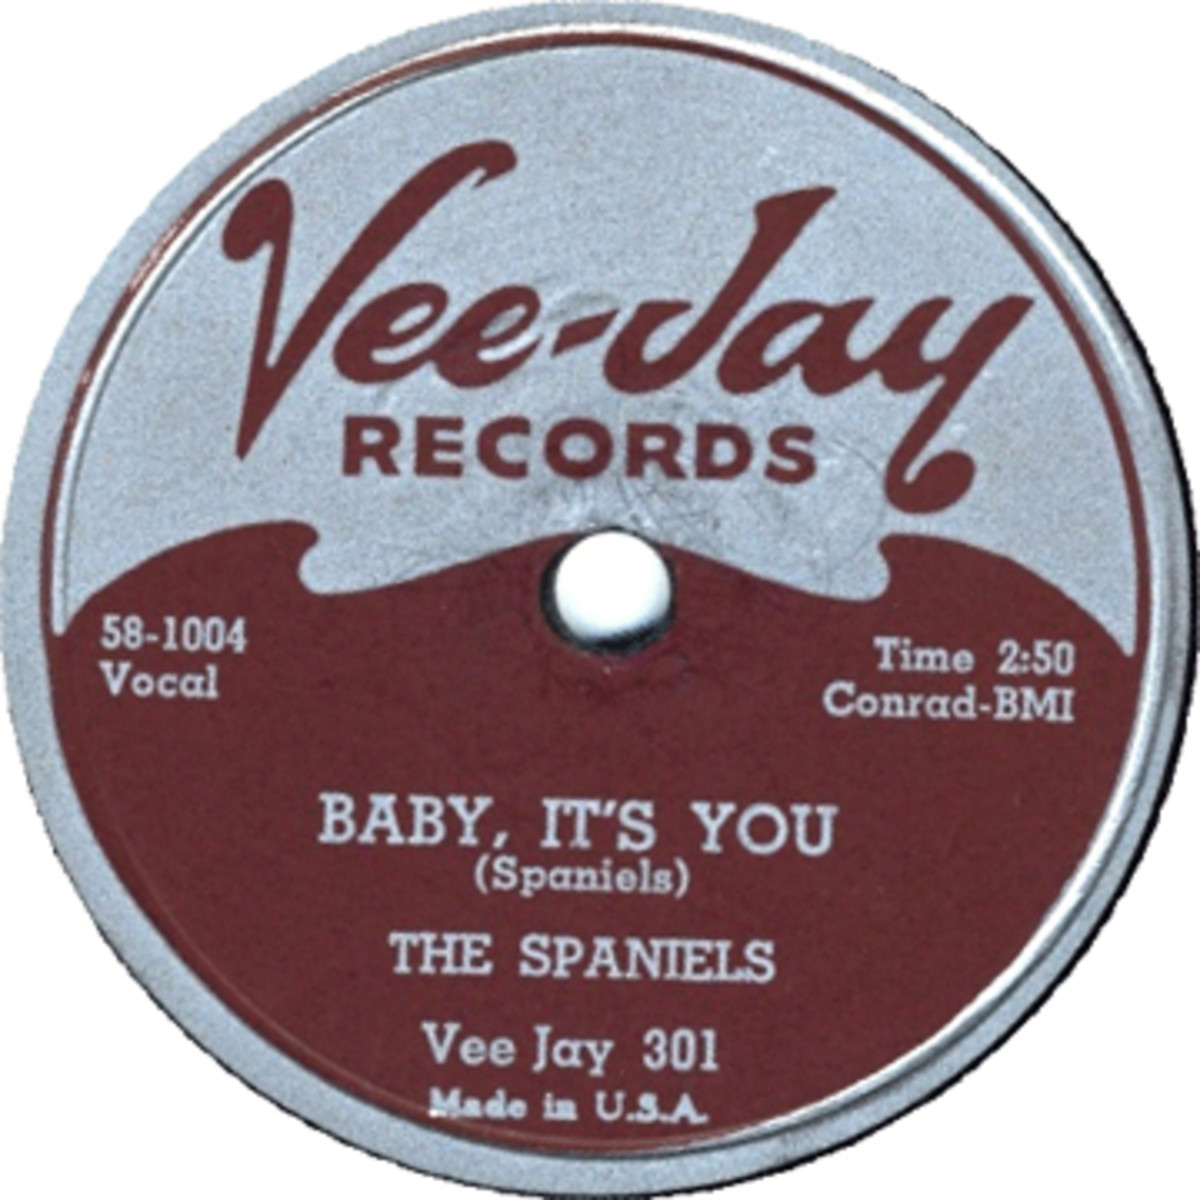 Spaniels Baby Its You on Vee Jay